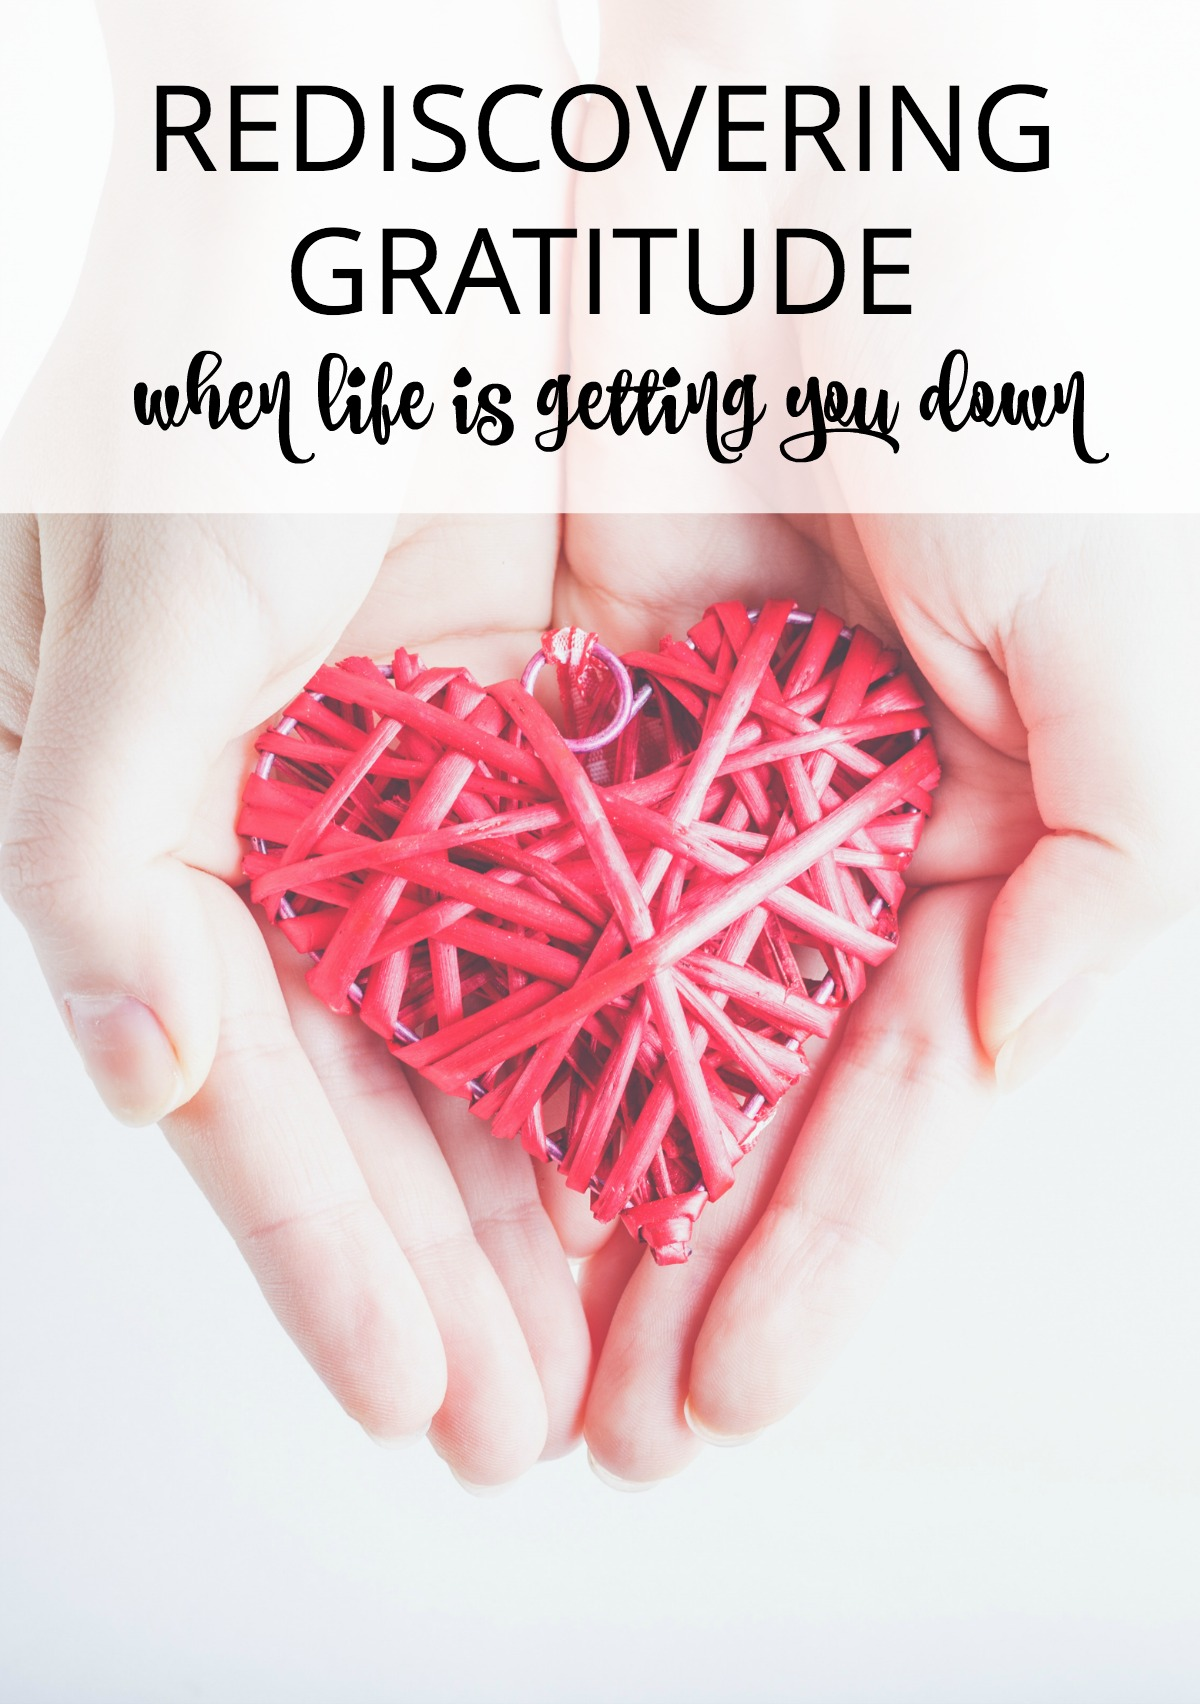 Sometimes, the fast pace of life + work can blur your vision of what really matters. See how a chaotic dinner party helped re-ignite one woman's gratitude.